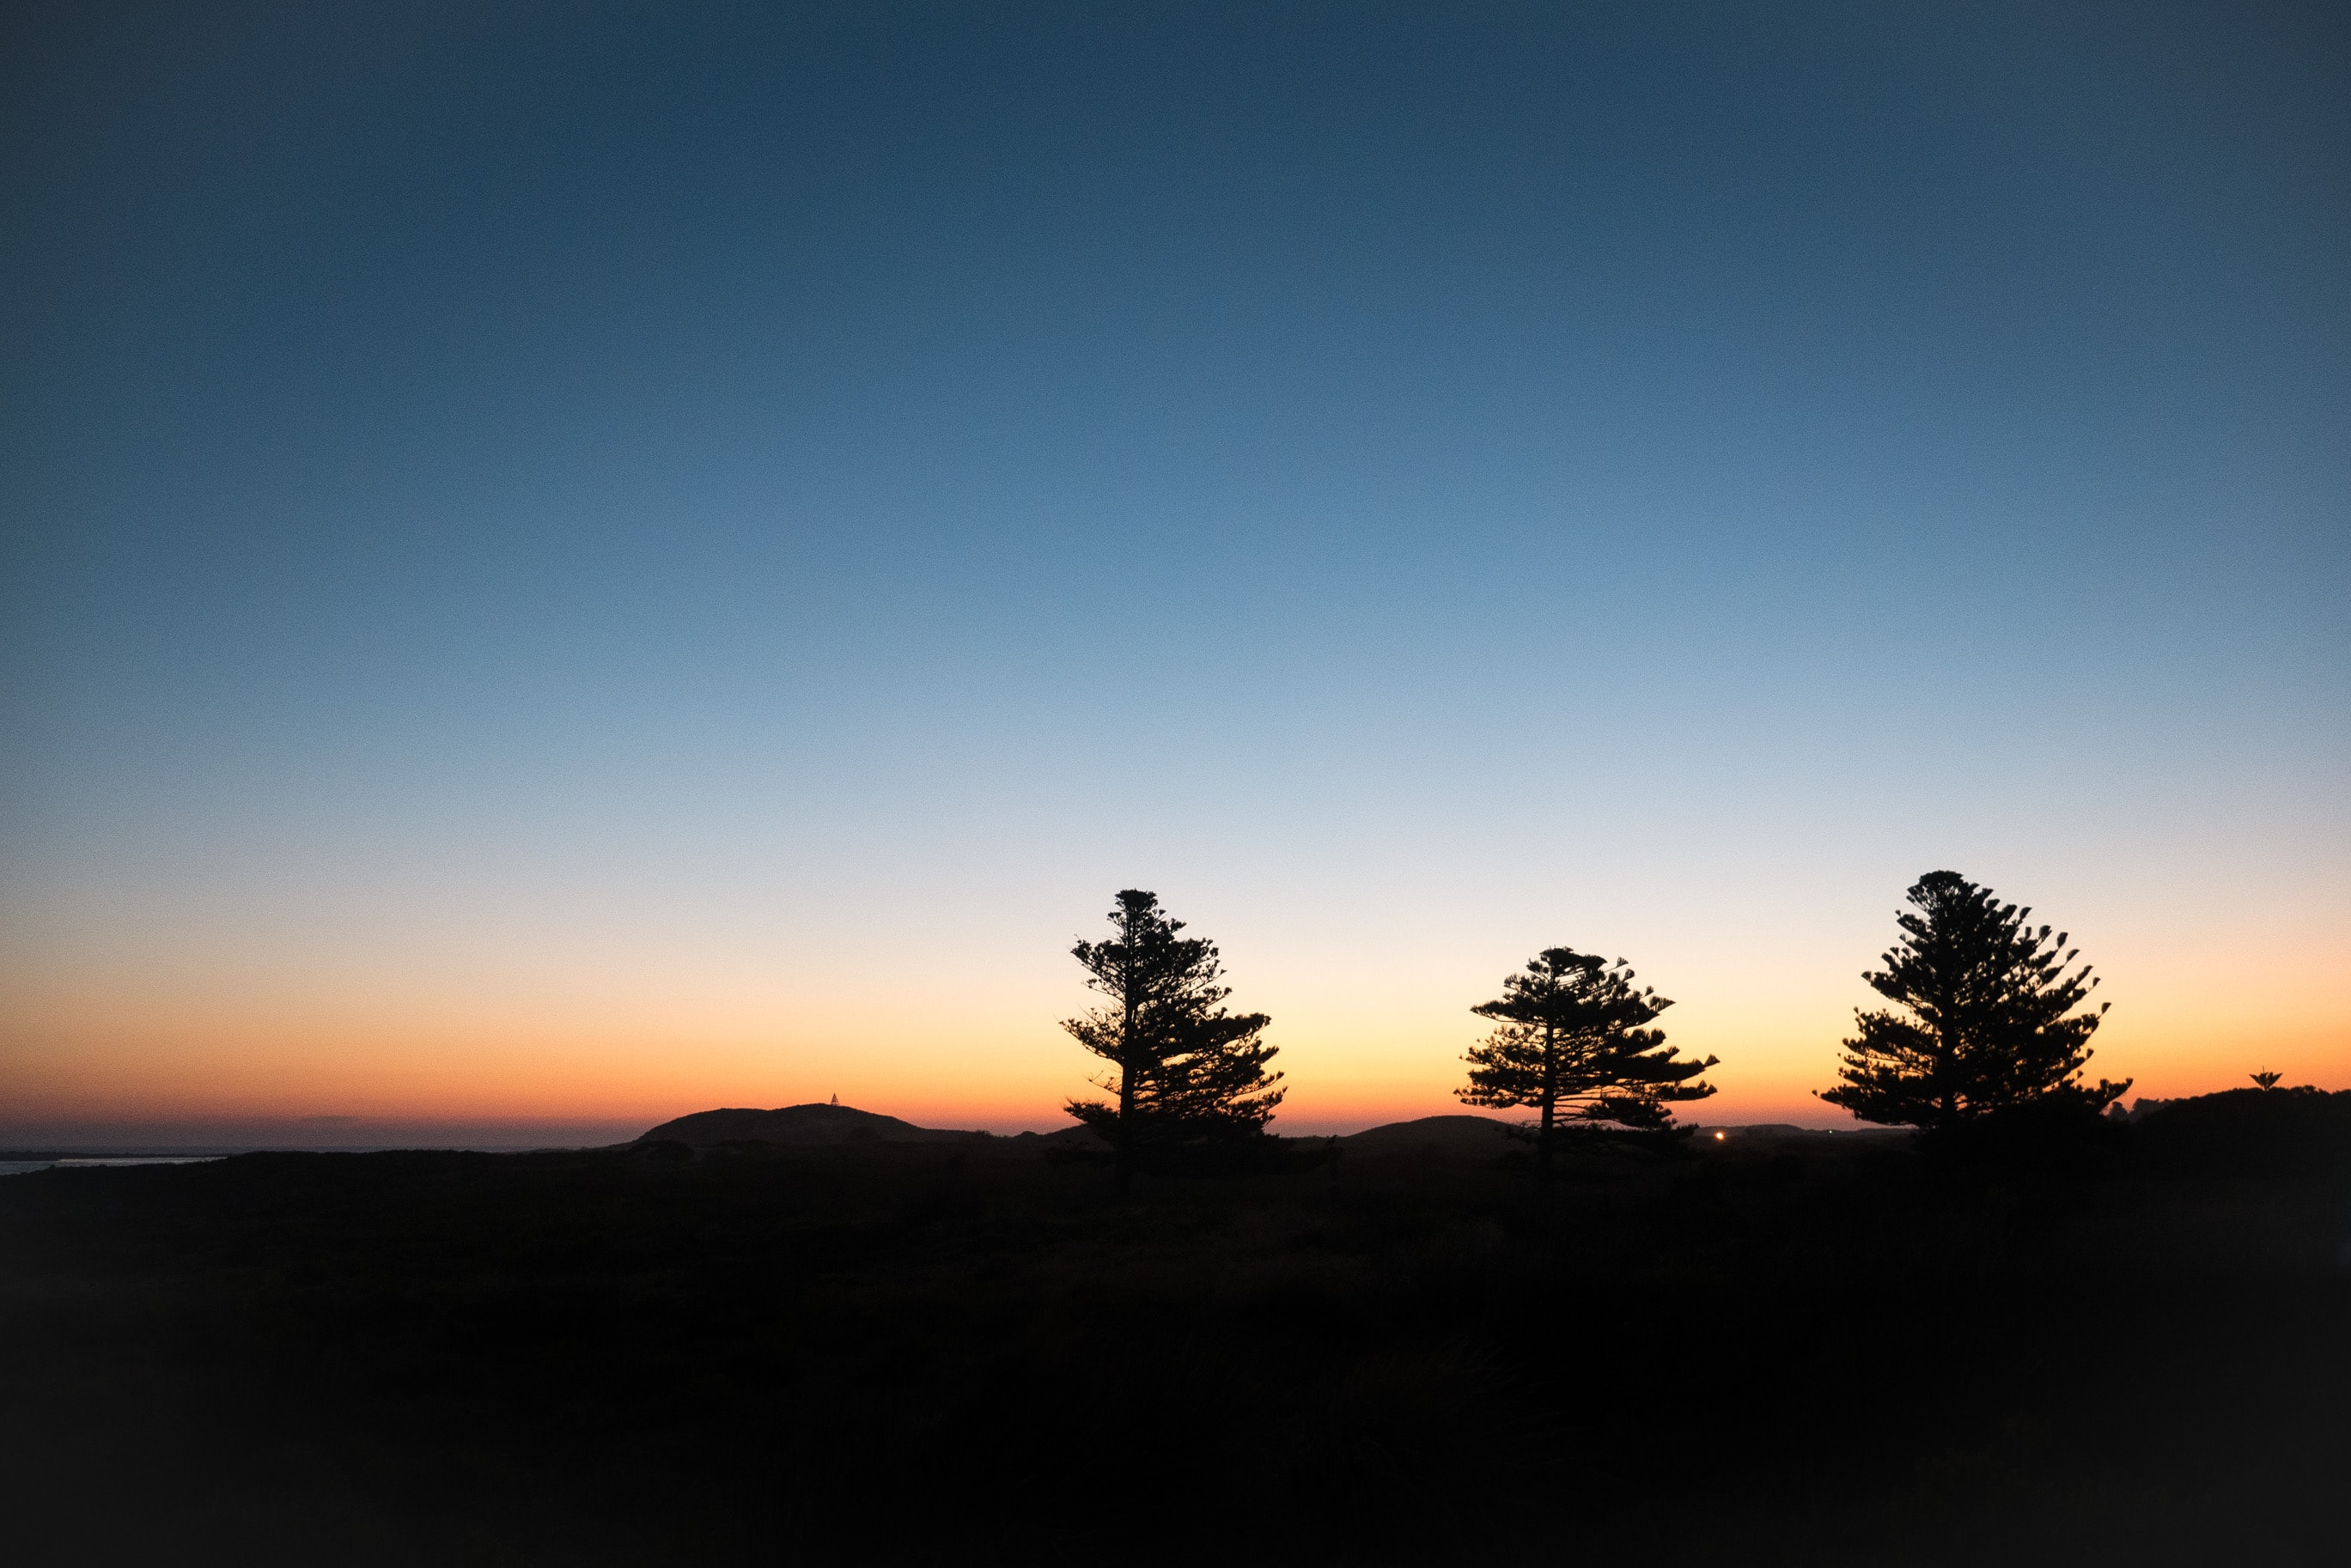 A silhouette of three trees, as the sun sets in the distance over Griffitts Island